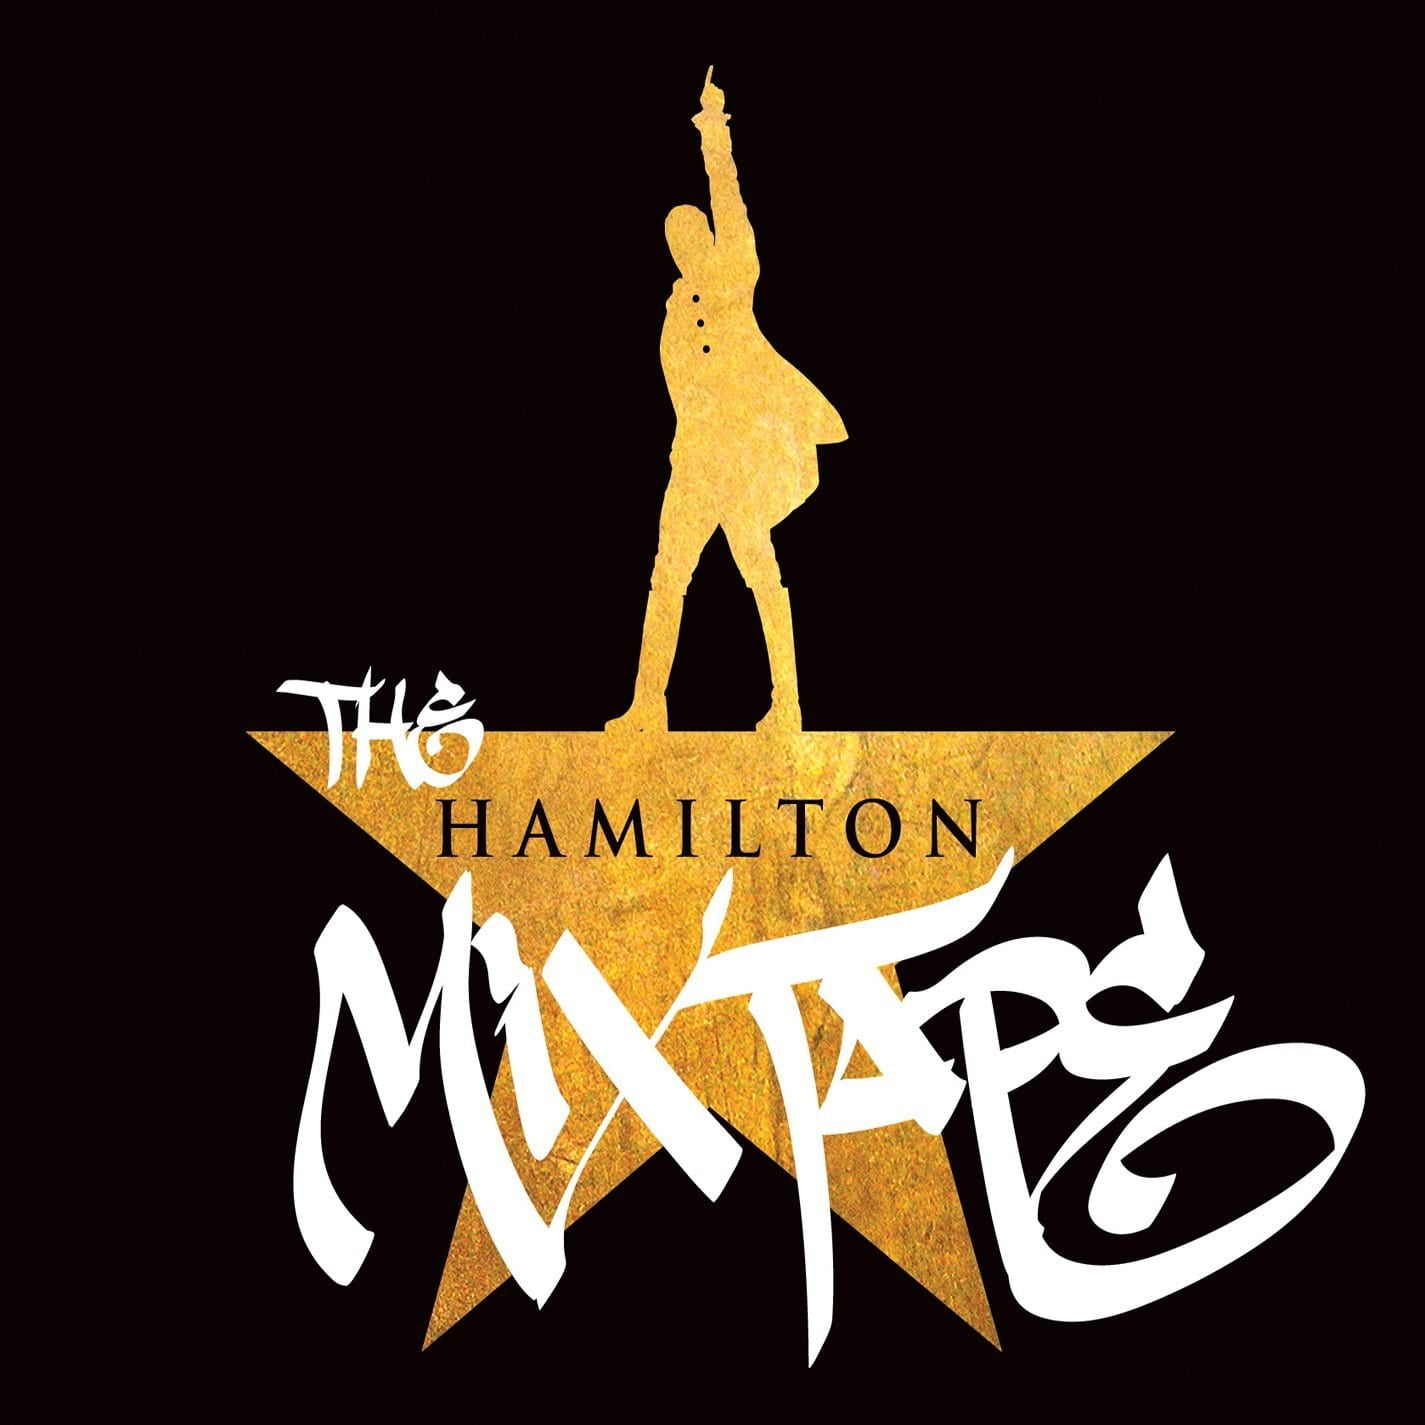 Various Artists - Hamilton Mixtape, The (Soundtrack) [2LP] (feats. The Roots, Sia, Usher, Kelly Clarkson, Alicia Keys, Nas, Chance The Rapper, John Legend, etc., +3 unreleased HAMILTON demos, download - Urban Vinyl | Records, Headphones, and more.